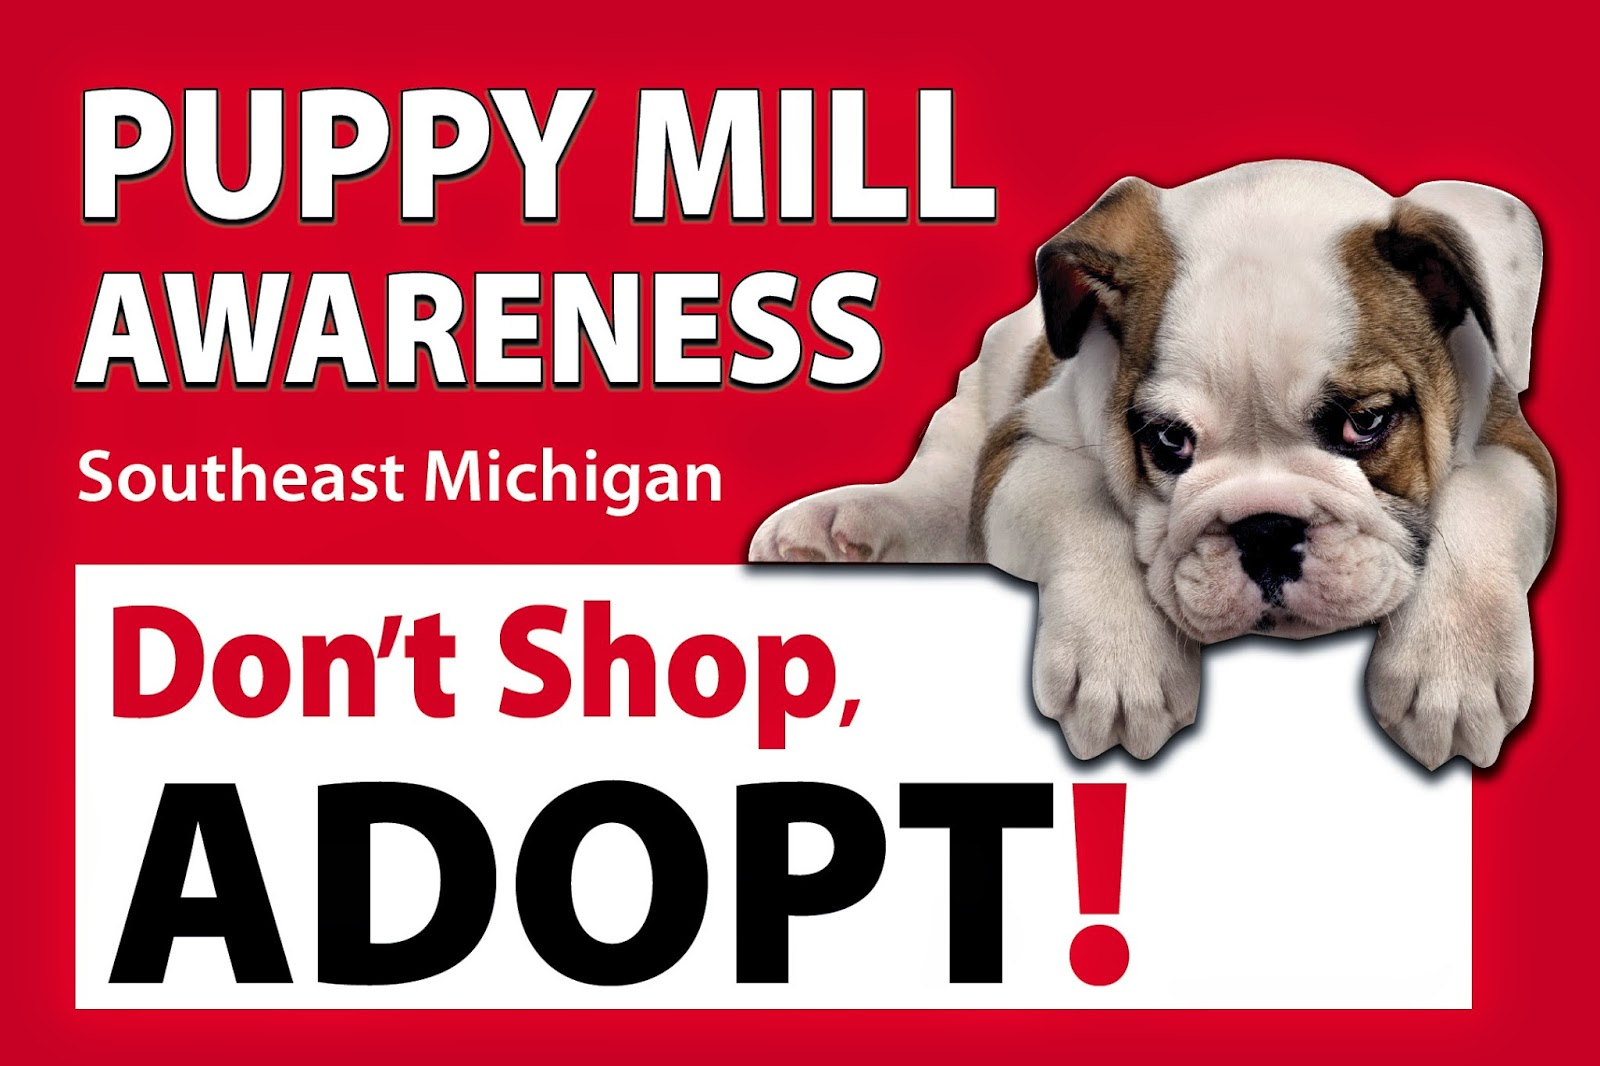 building awareness to animal abuse in puppy mills